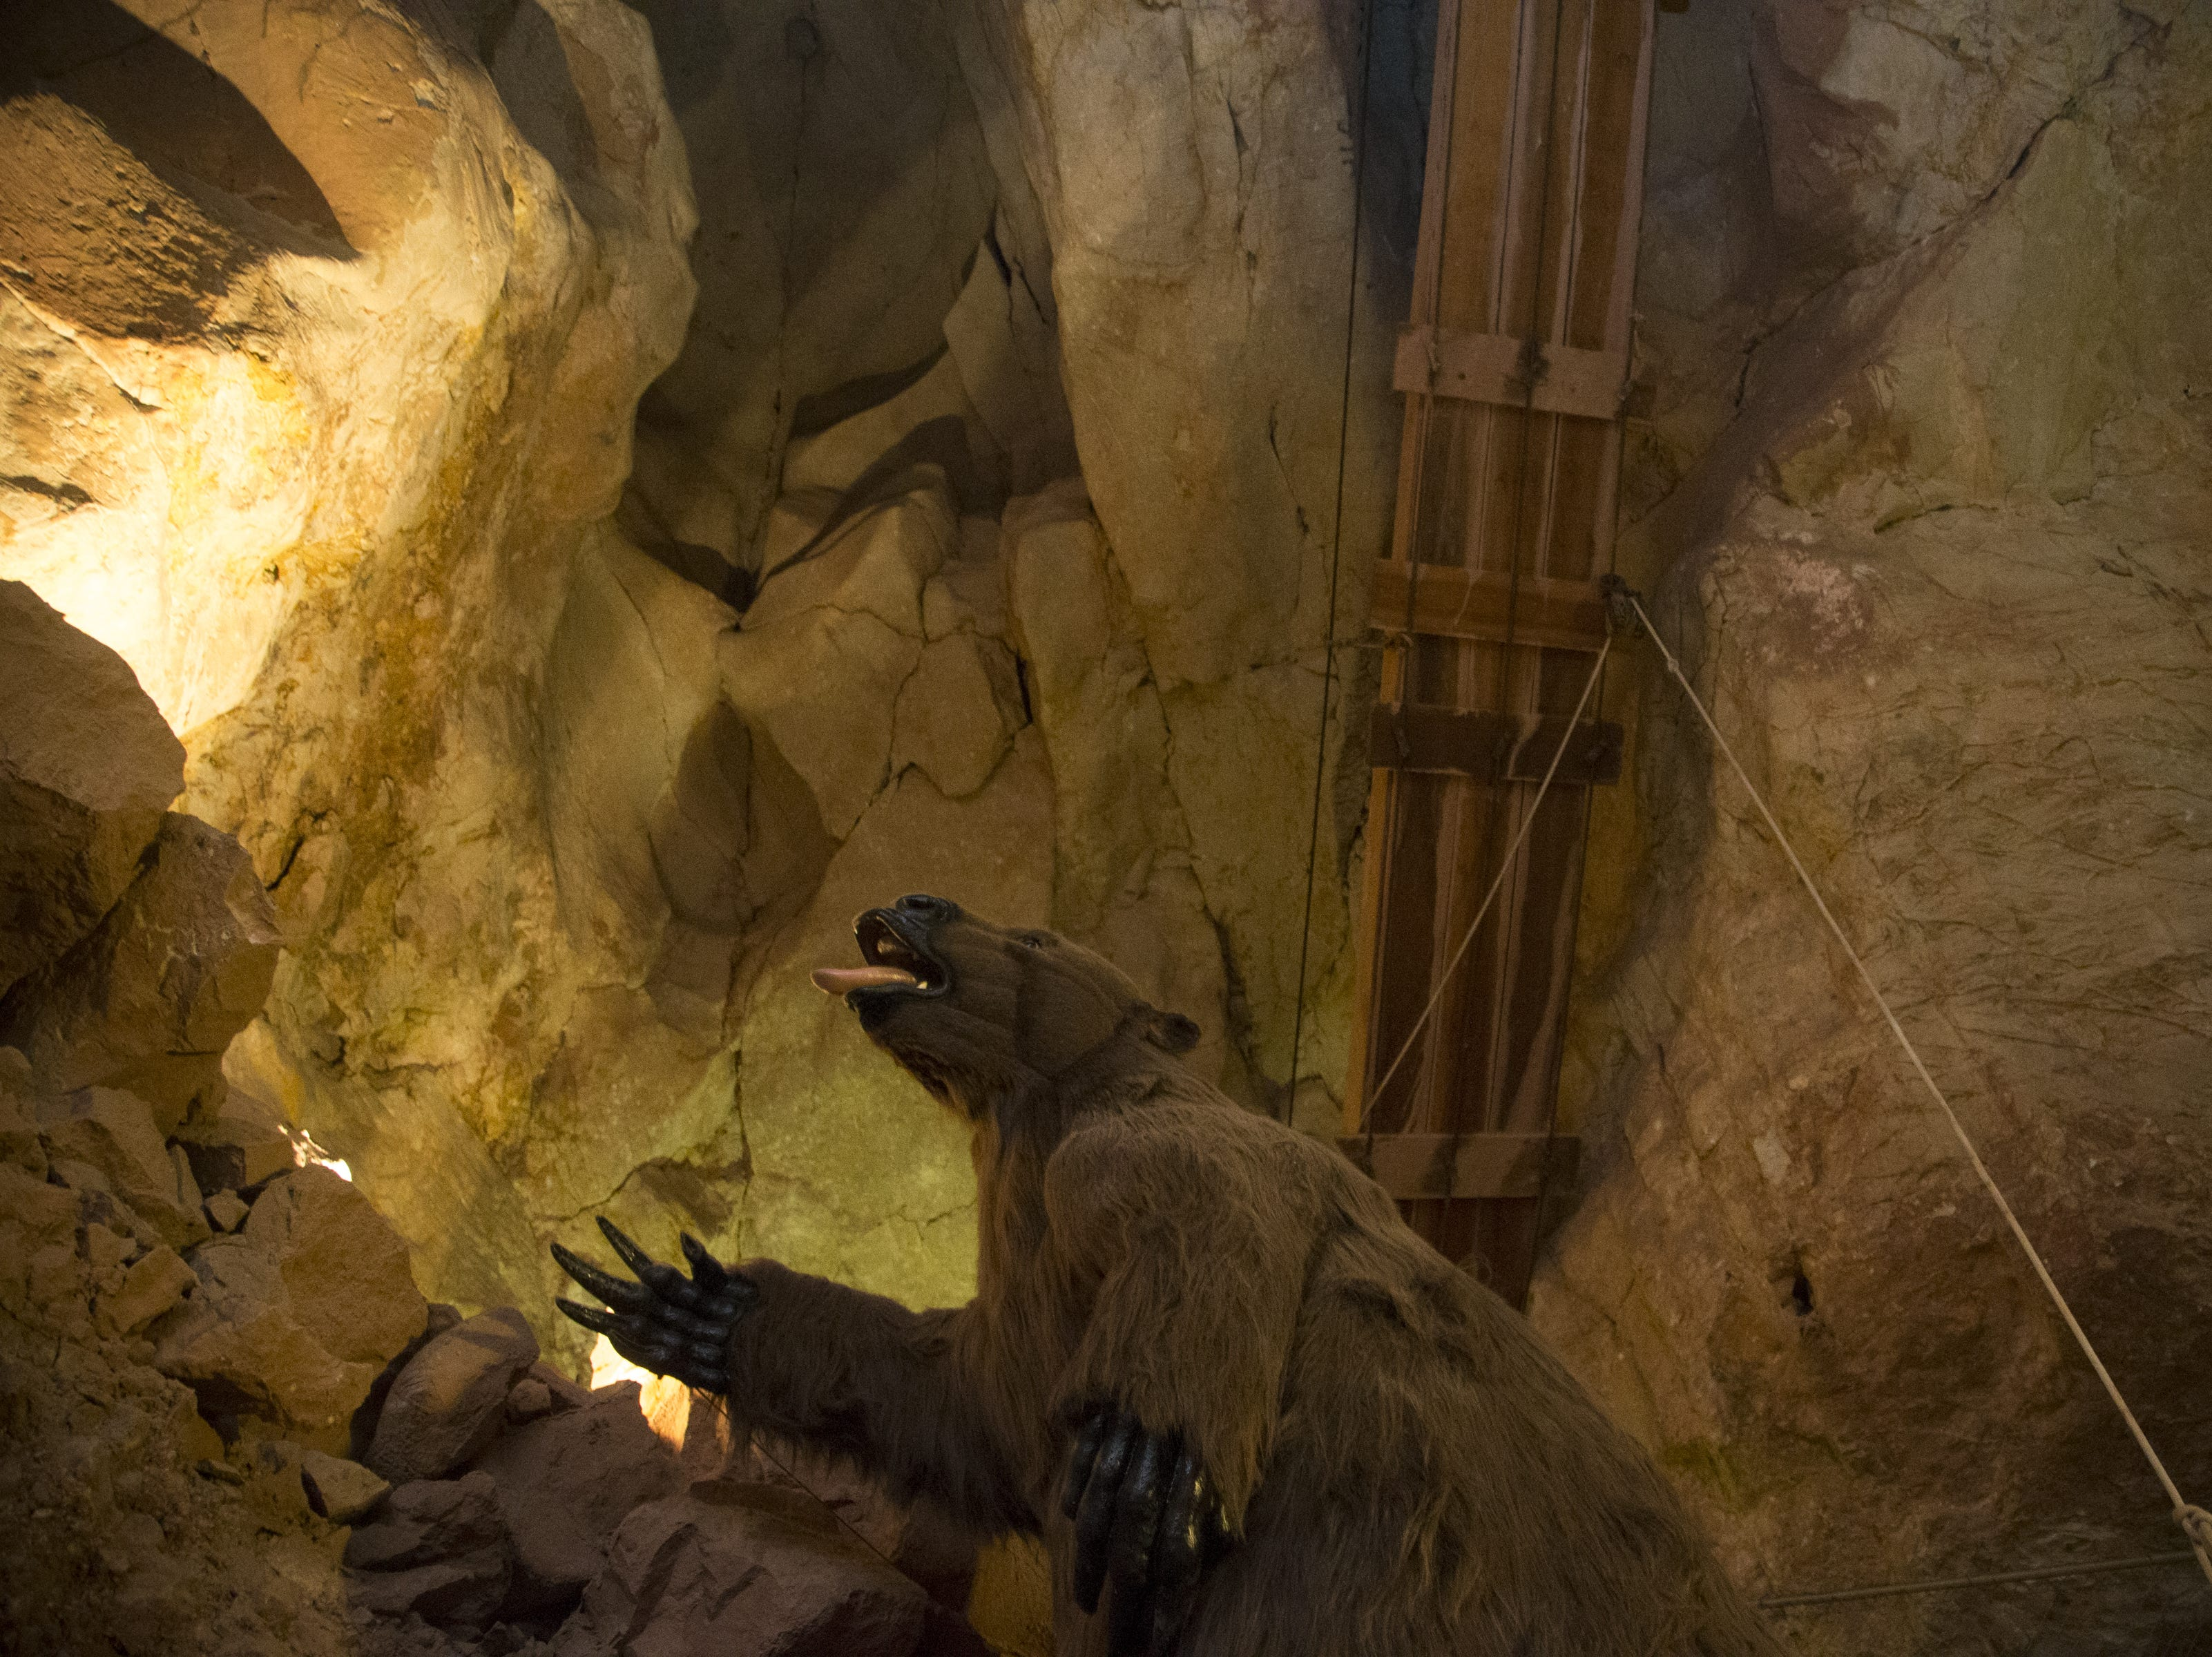 Guests staying in the Caverns Suite share the space with a replica of a giant ground sloth, extinct for 11,000 years. There's also a mummified bobcat on display.